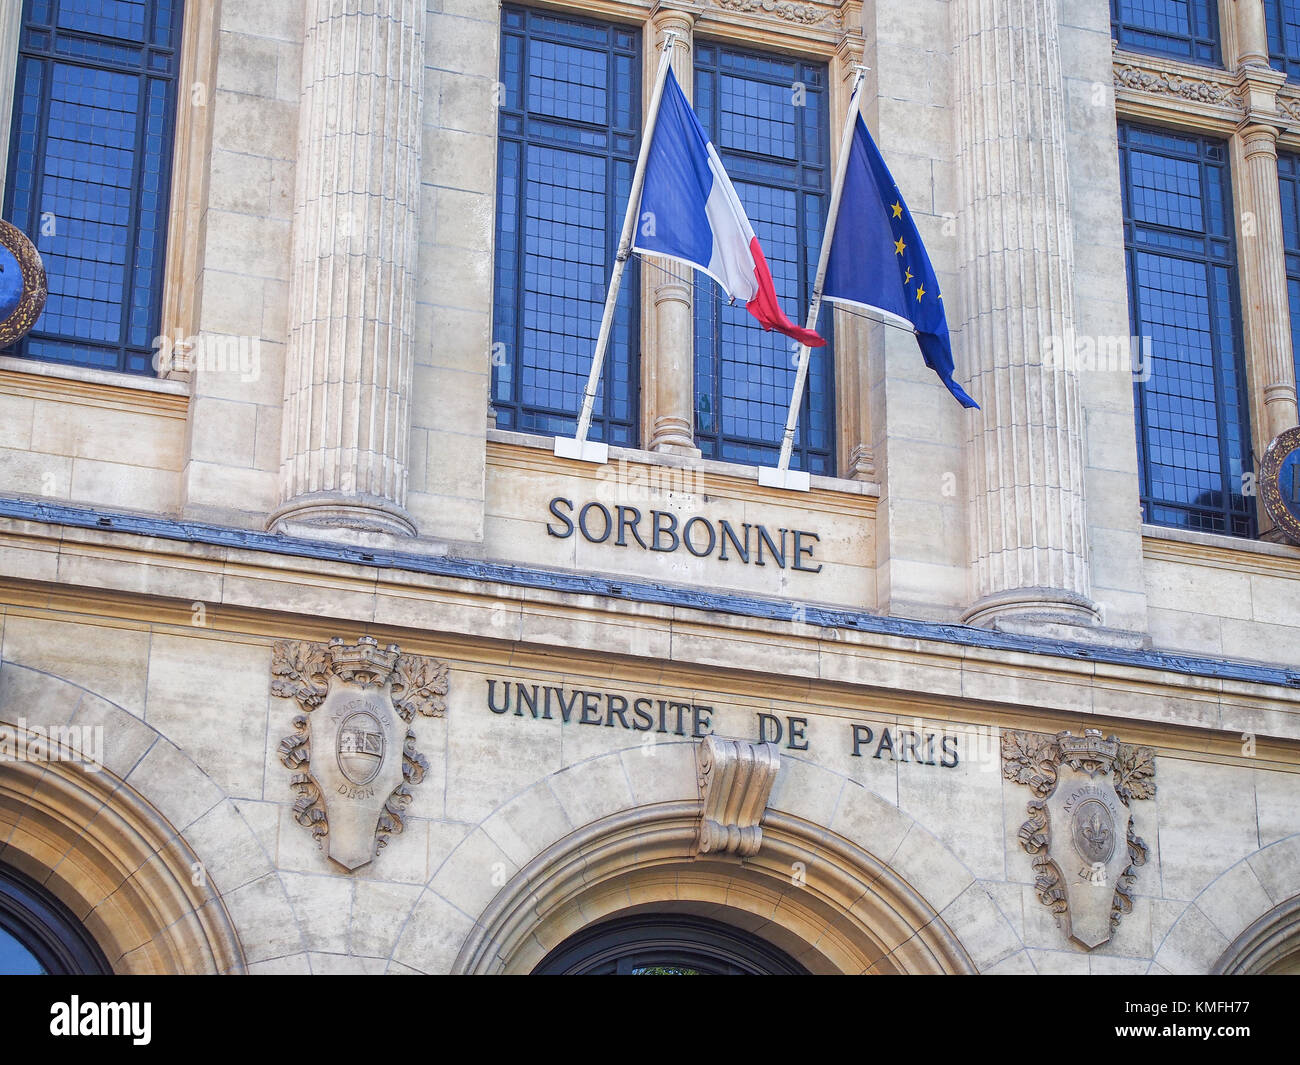 Title on the facade of the Sorbonne University bellow french and EU flags. - Stock Image